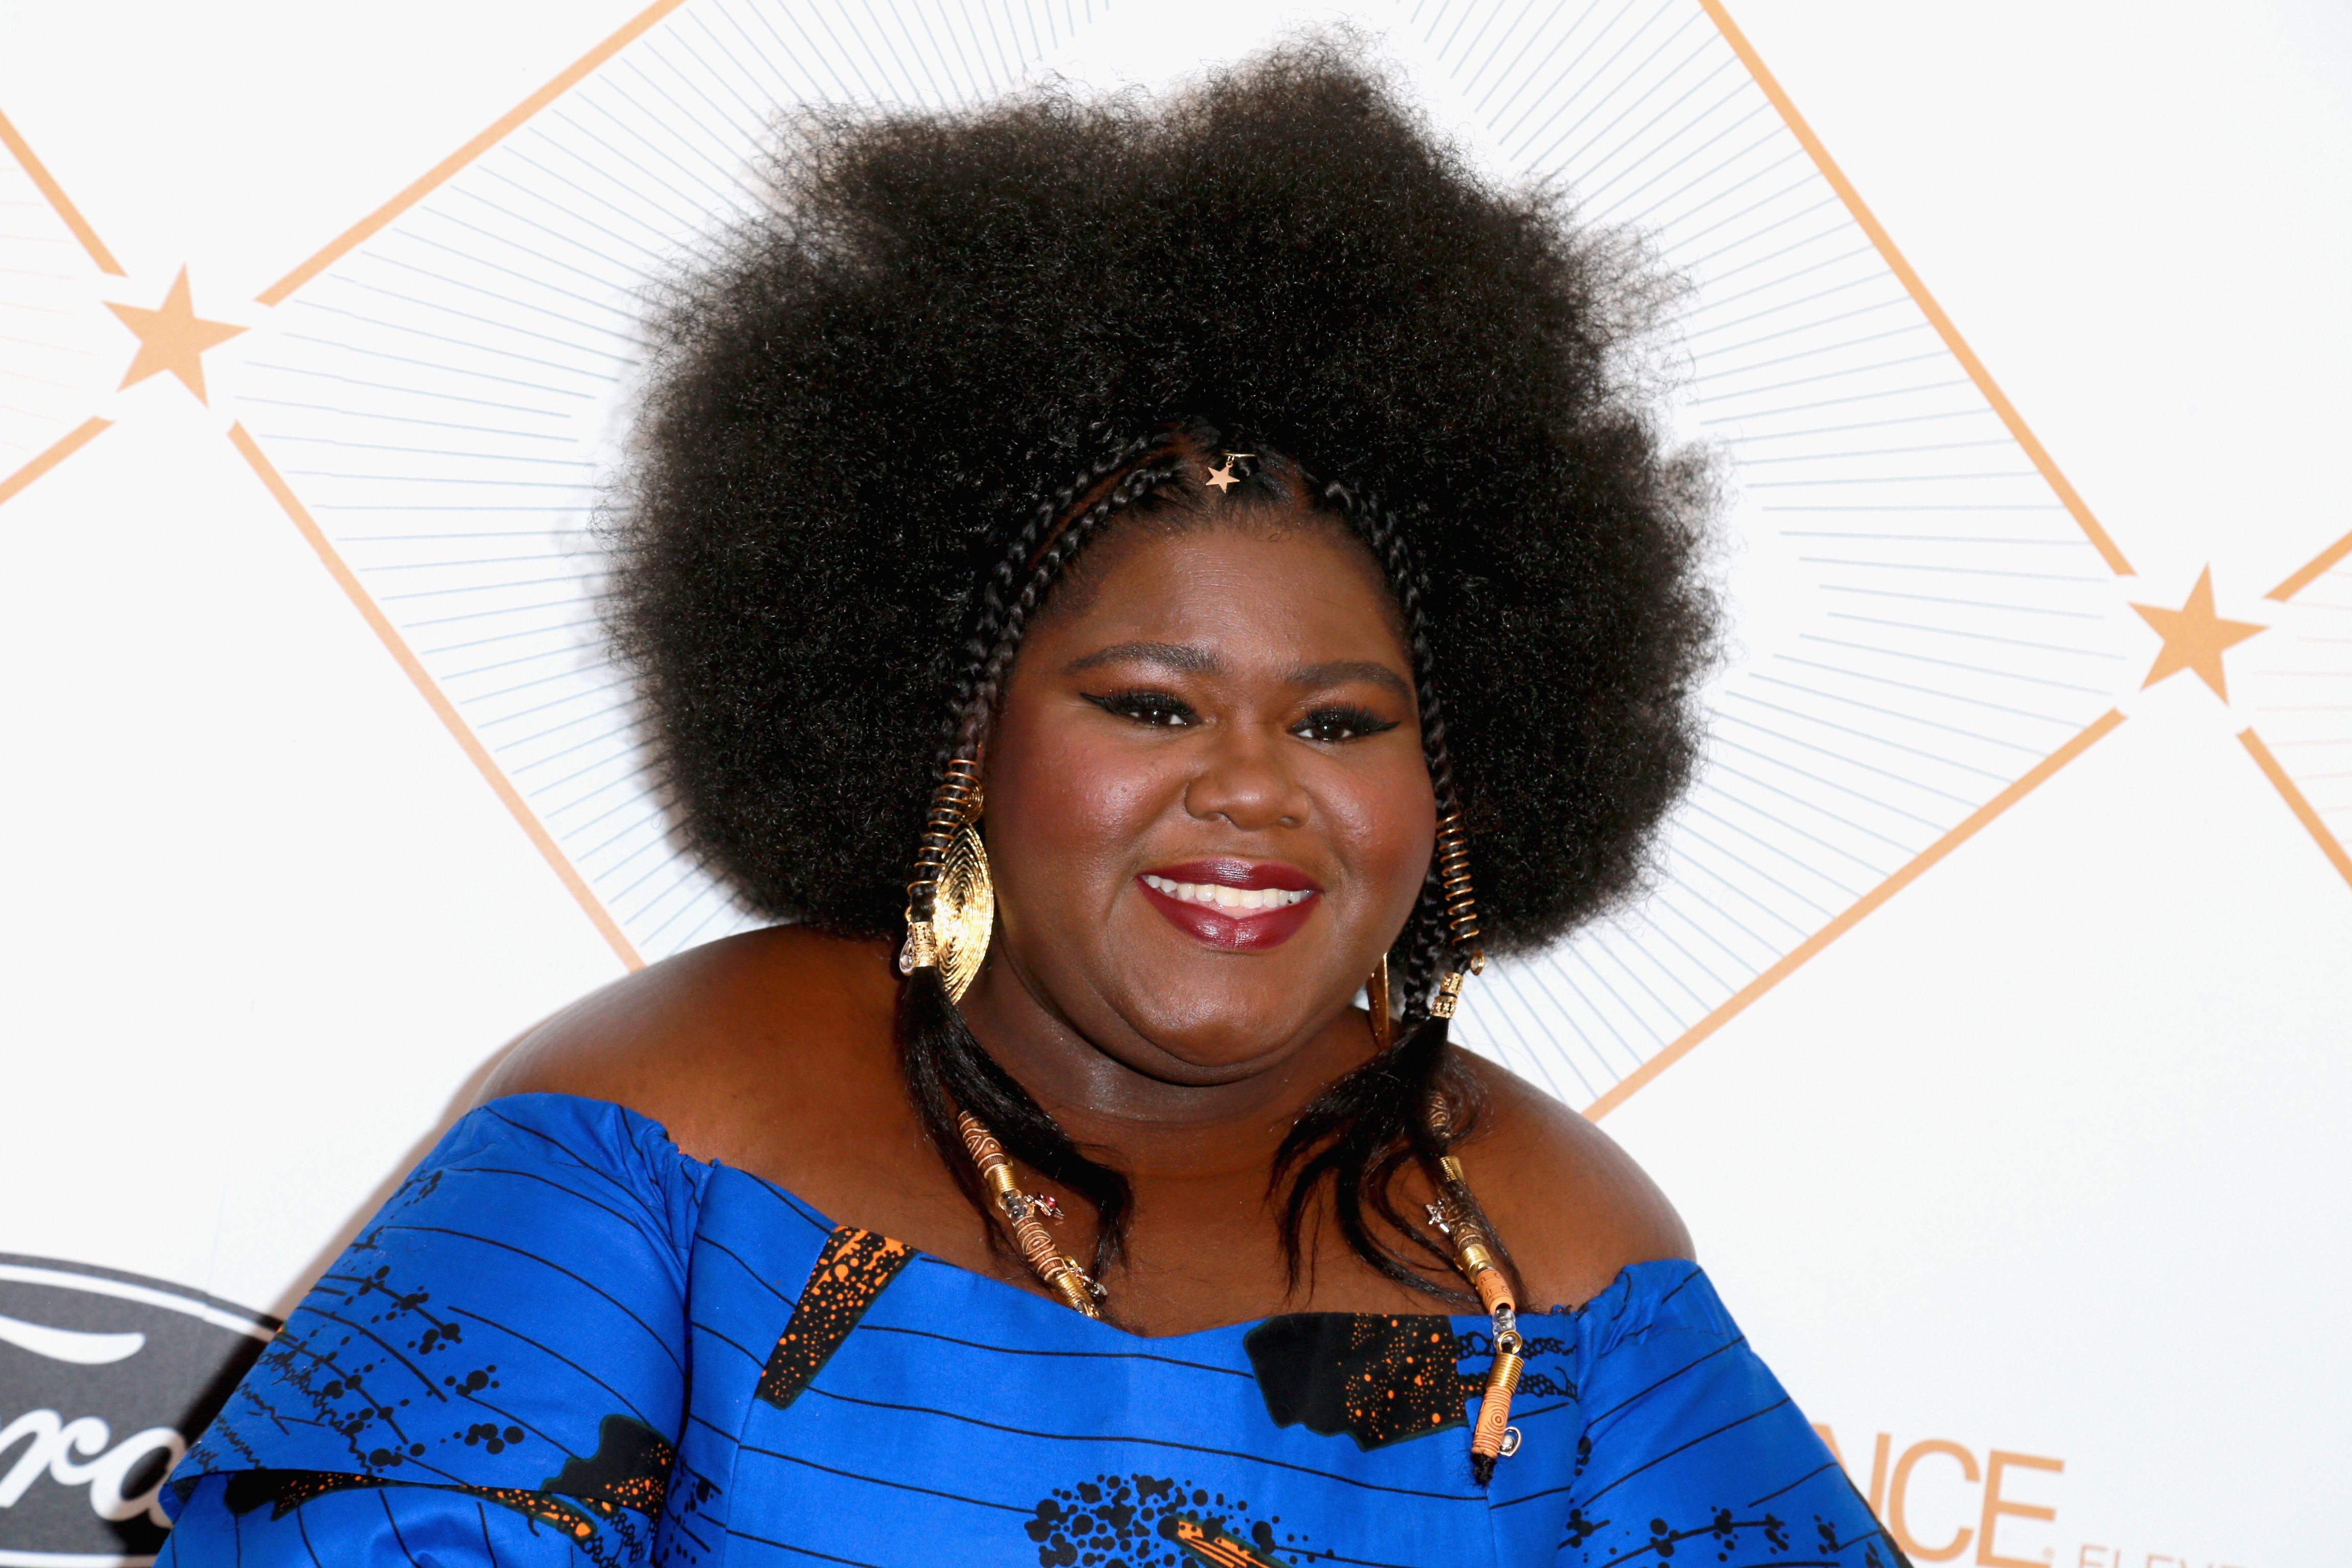 Gabourey Sidibe at the 2018 Essence Black Women In Hollywood Oscars Luncheon on Mar. 1, 2018 in California | Photo: Getty Images